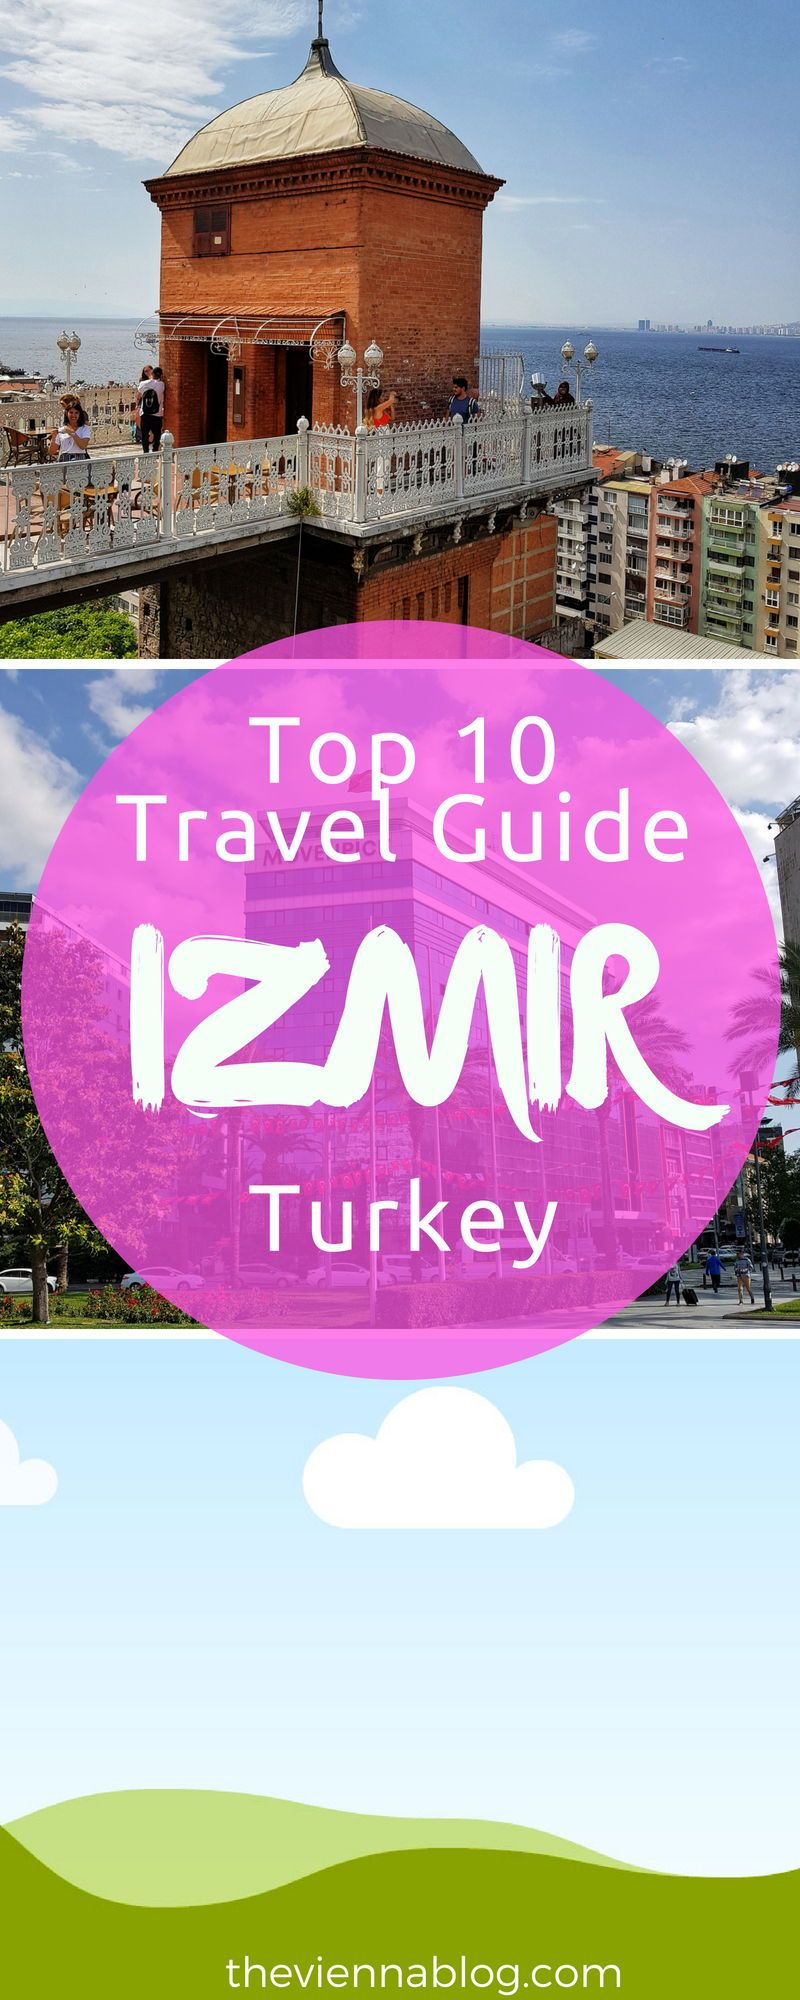 Top 10 Ultimate Things To See And Do In Izmir Turkey The Vienna Blog Lifestyle Travel Blog In Vienna Asia Travel Travel Lifestyle Izmir